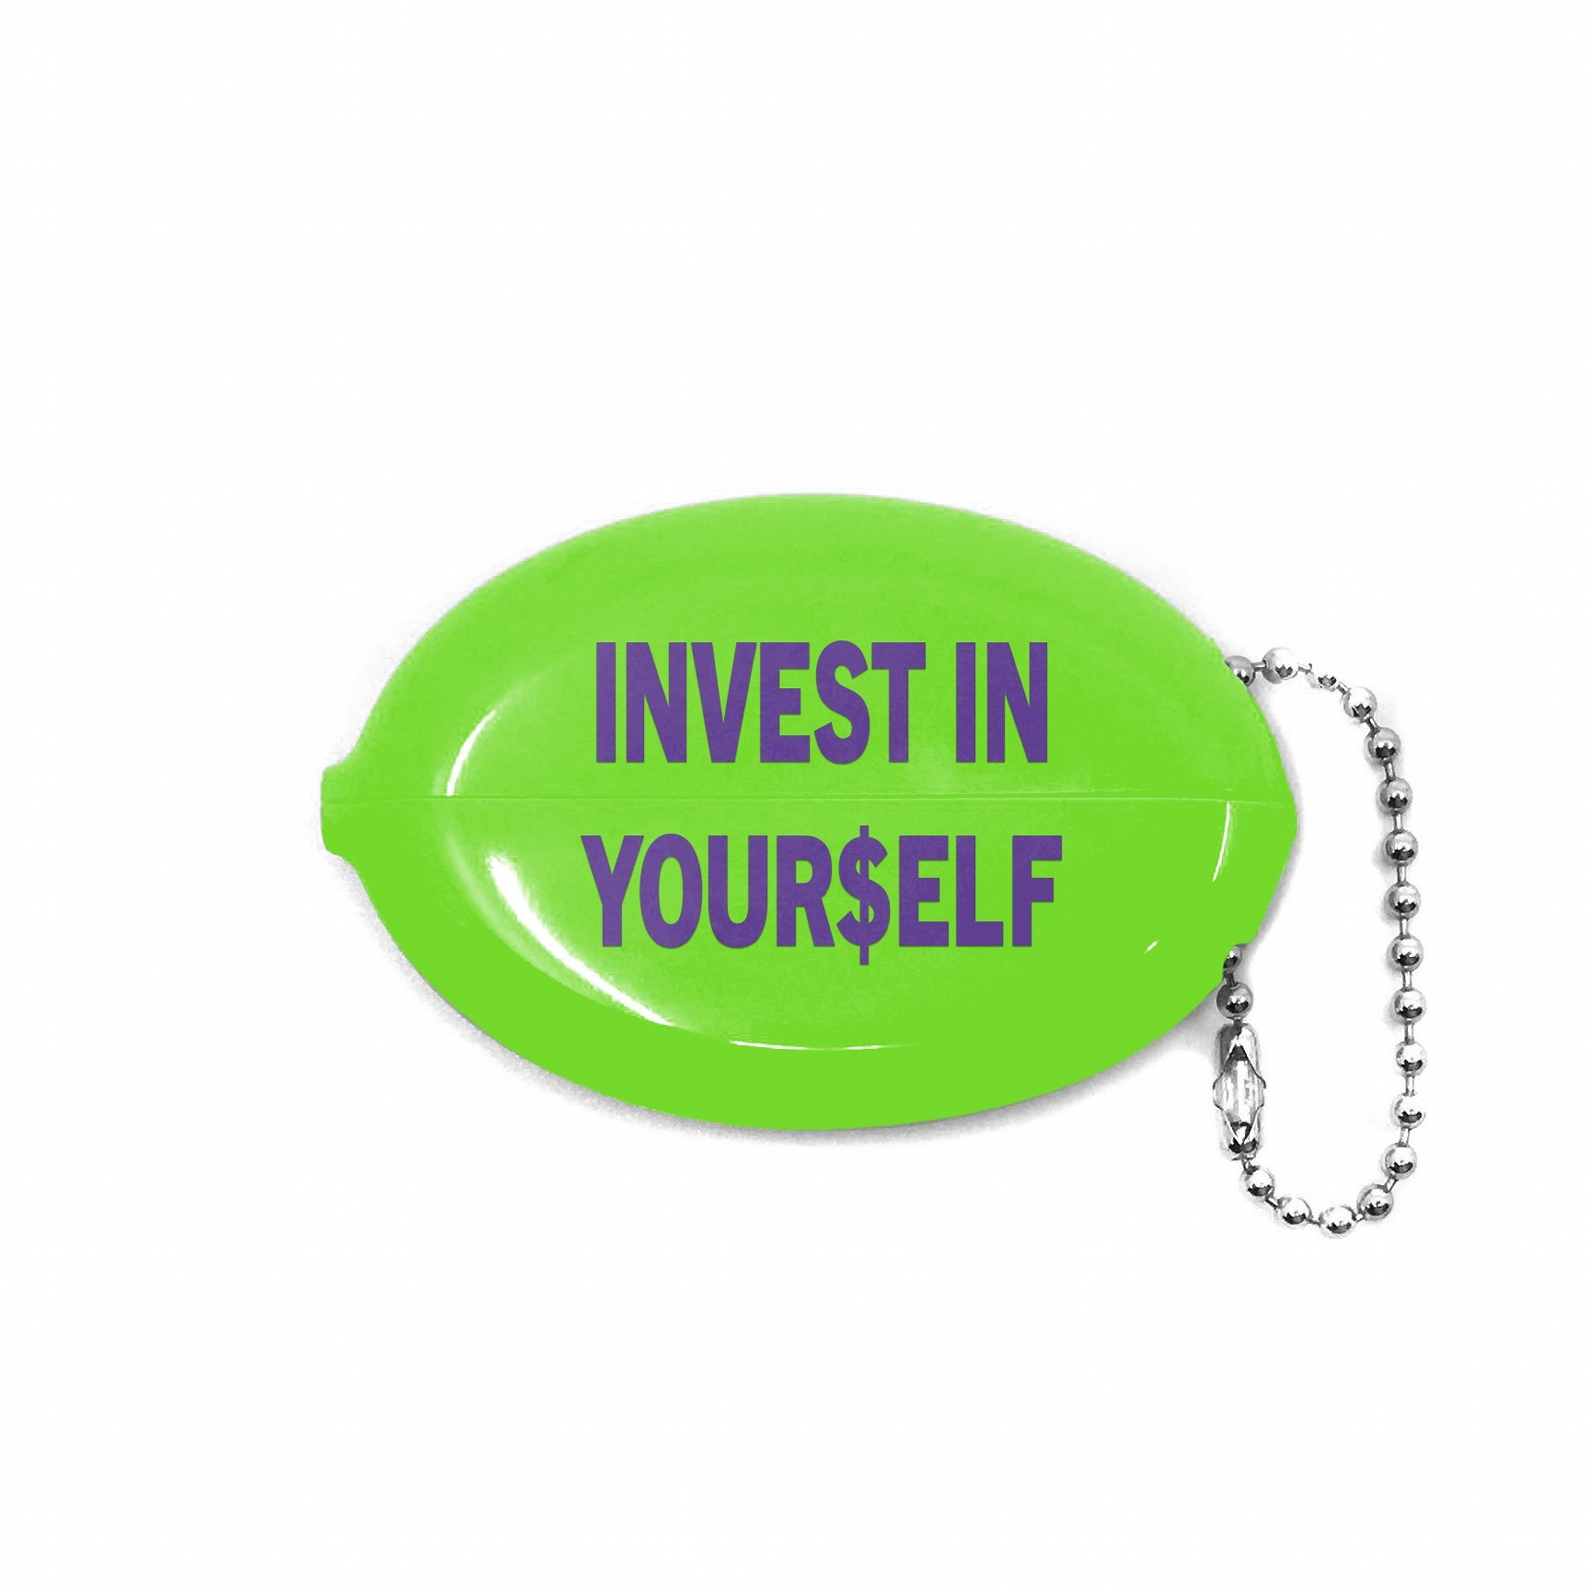 【COLD WORLD FROZEN GOODS/コールドワールドフローズングッズ】INVESTMENT SOUEEZY COIN POUCH ビニールコインポーチ / GREEN